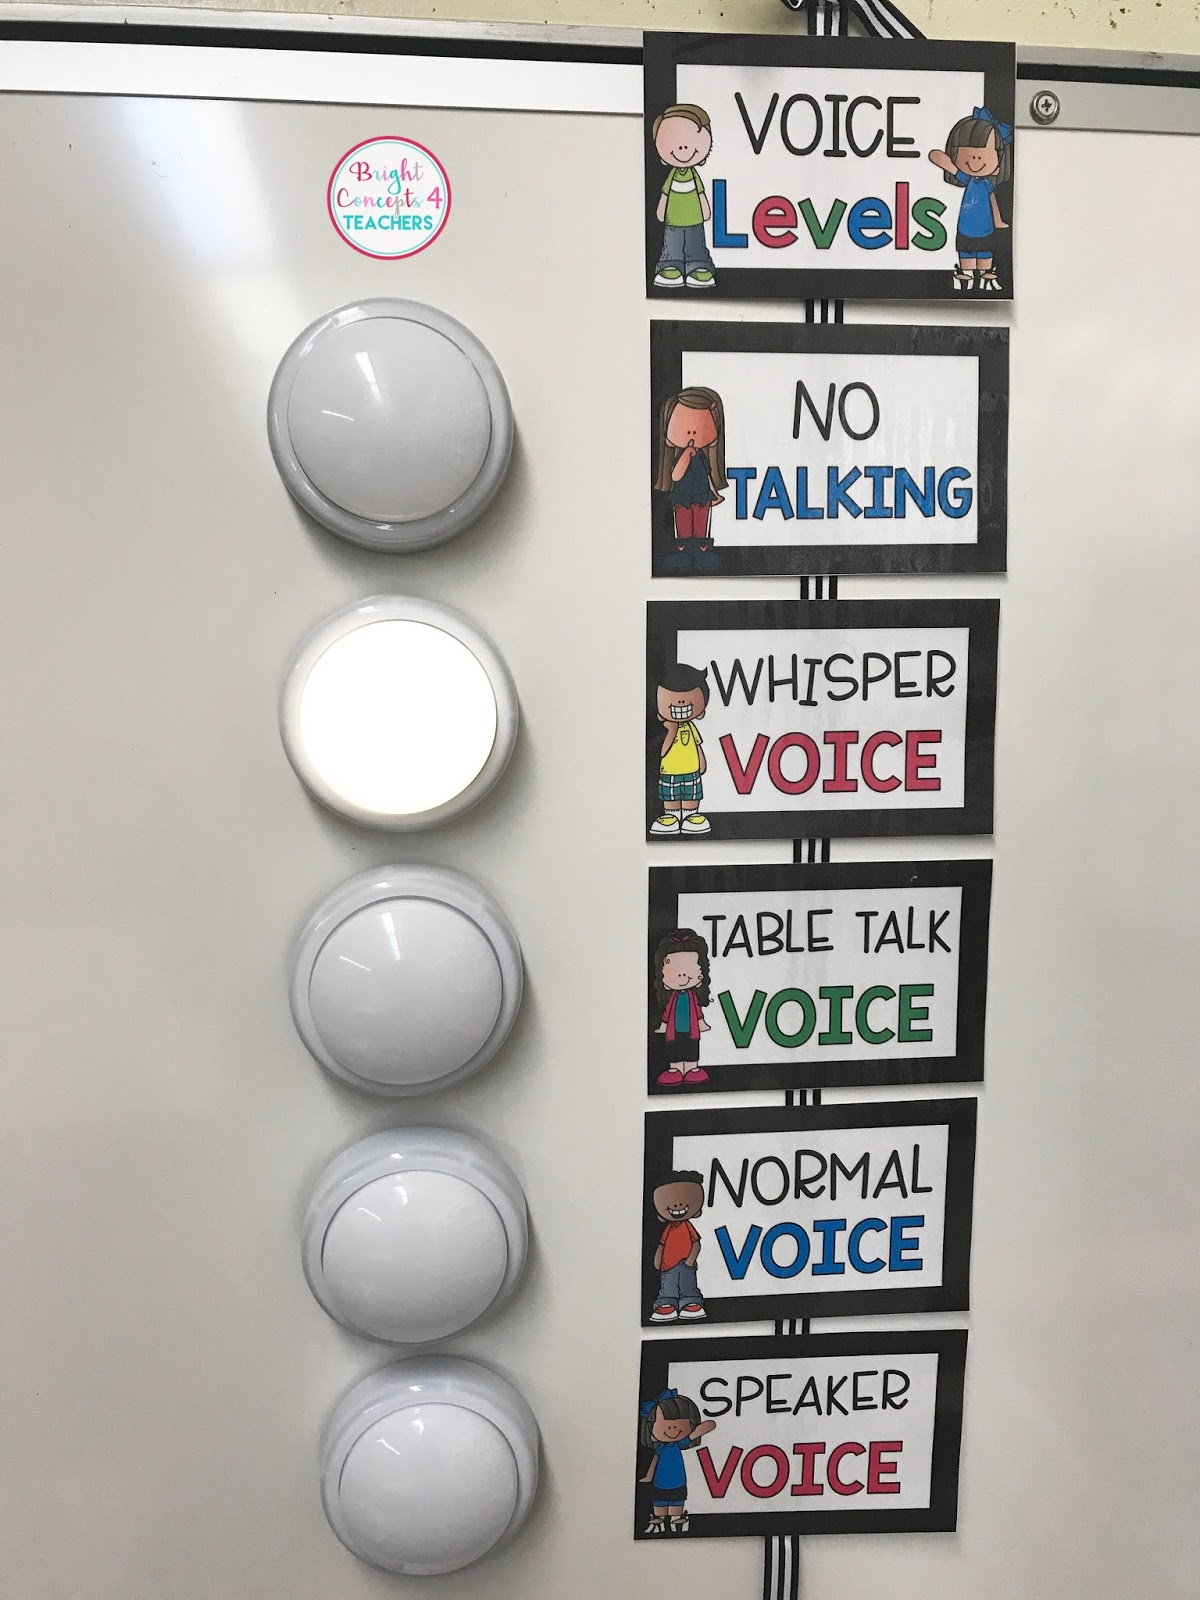 Clroom Voice Level Chart With Tap Lights